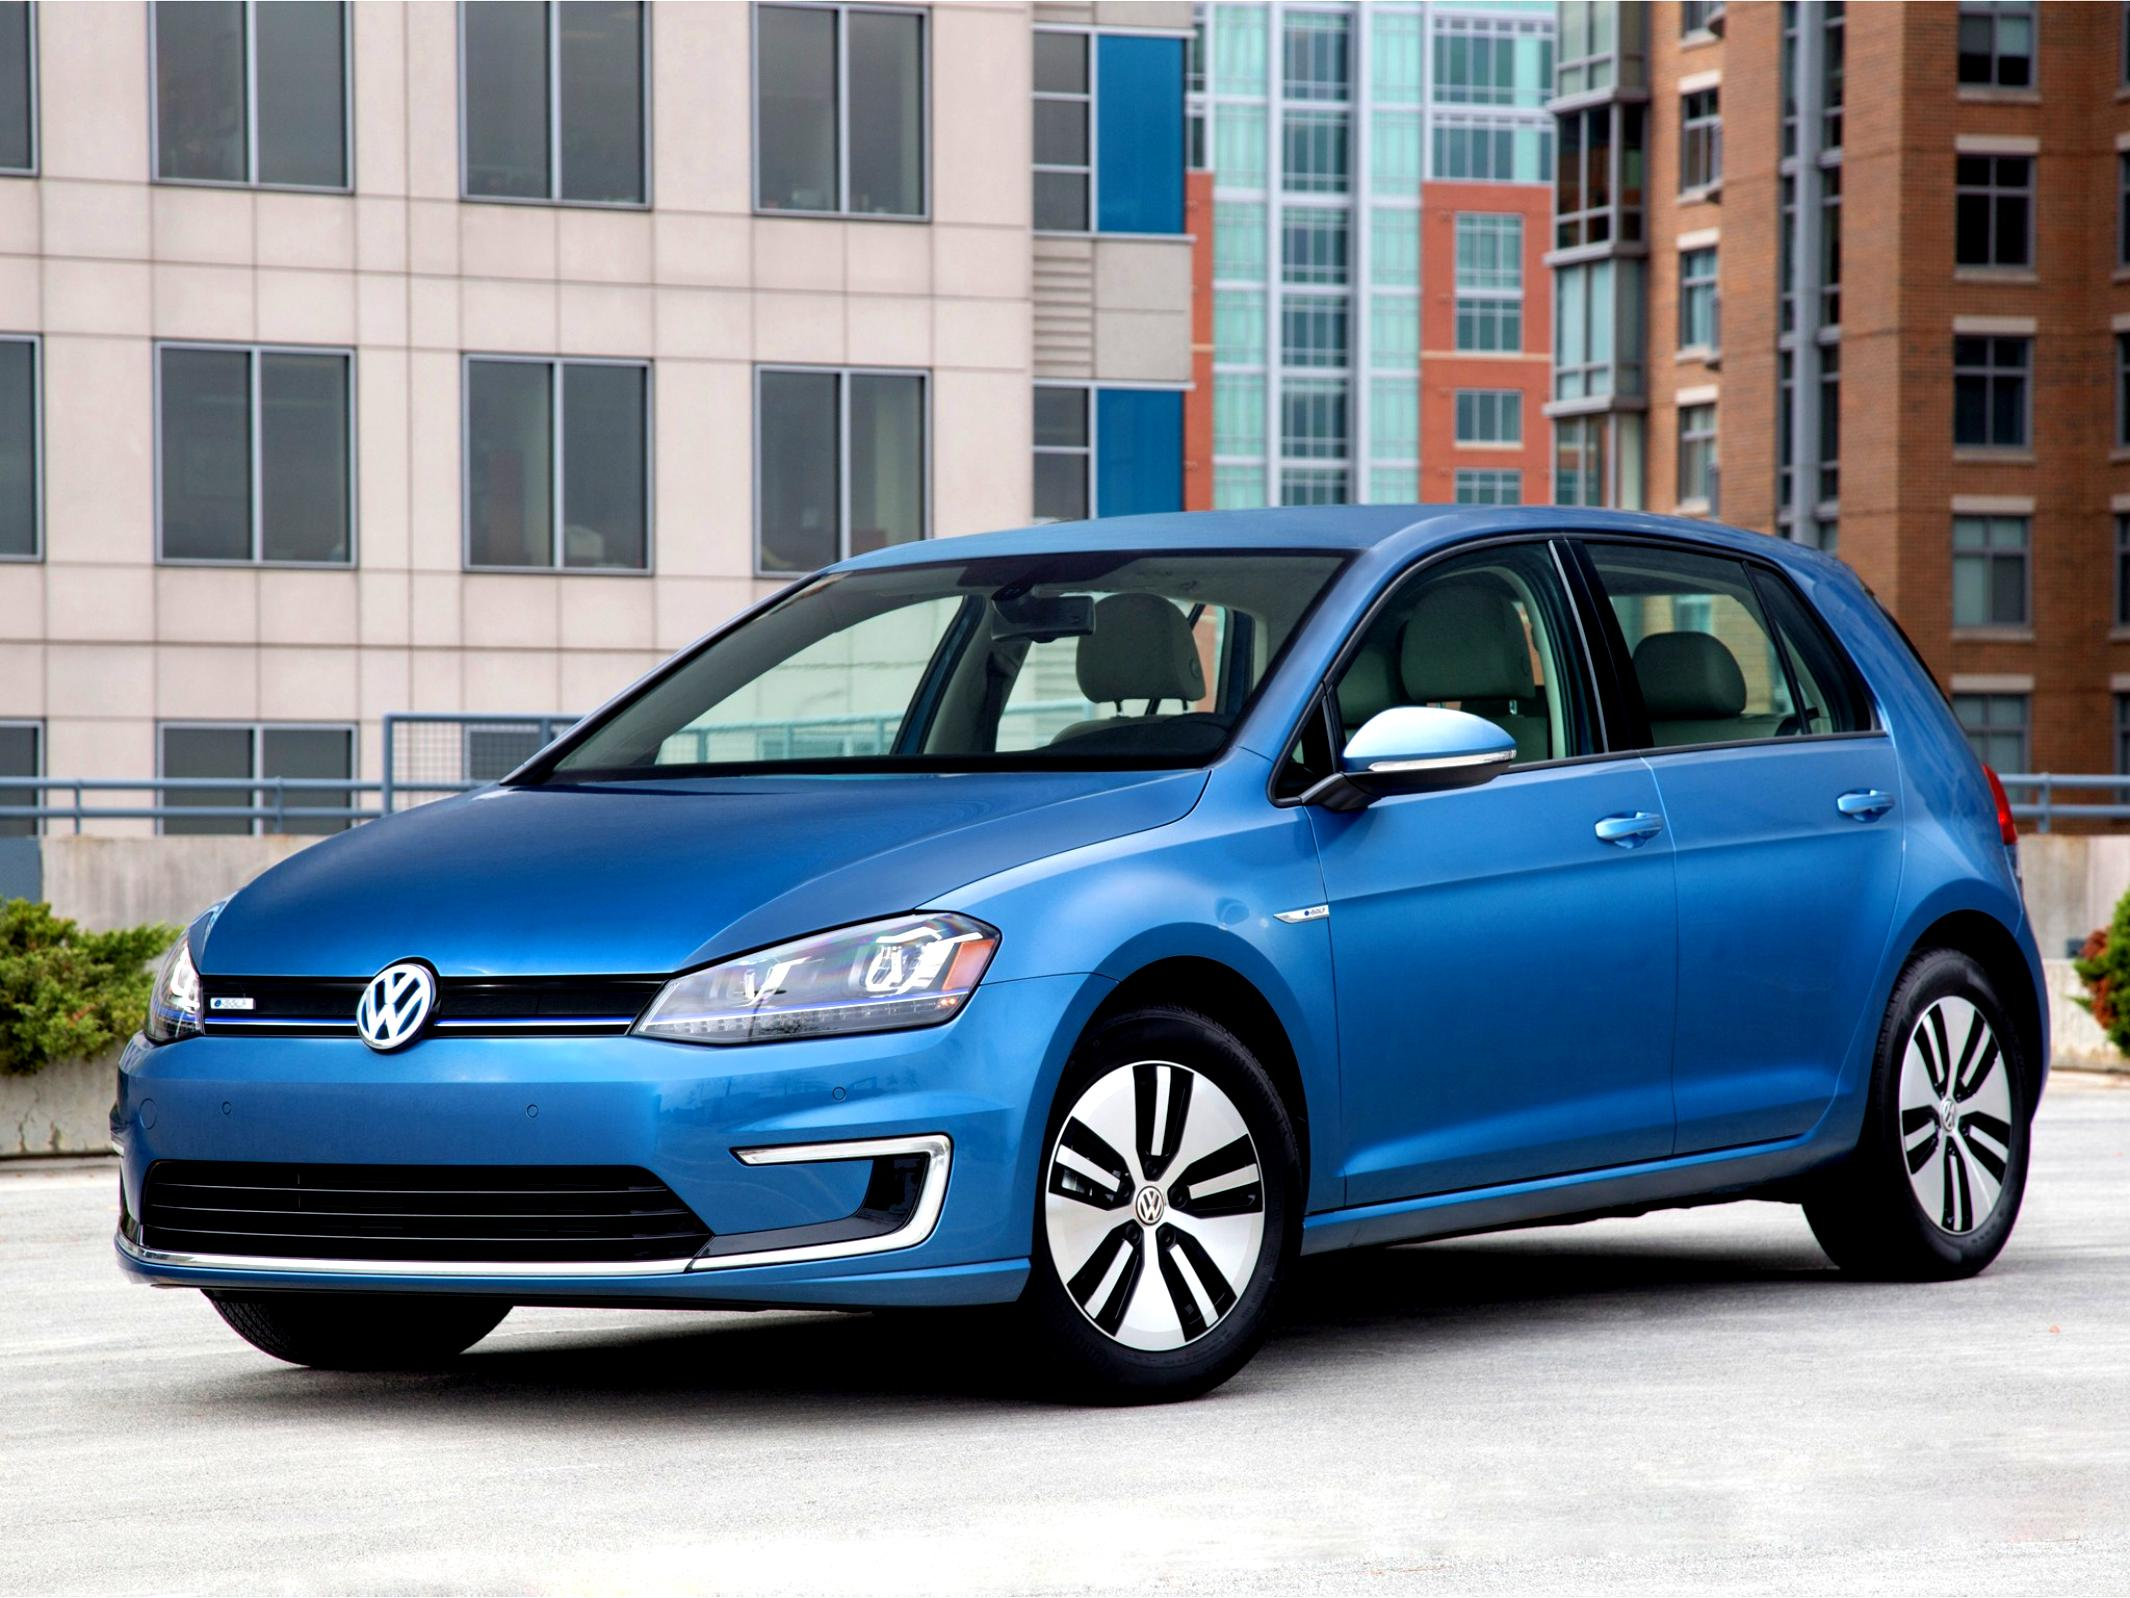 Volkswagen E-Golf 2014 #49